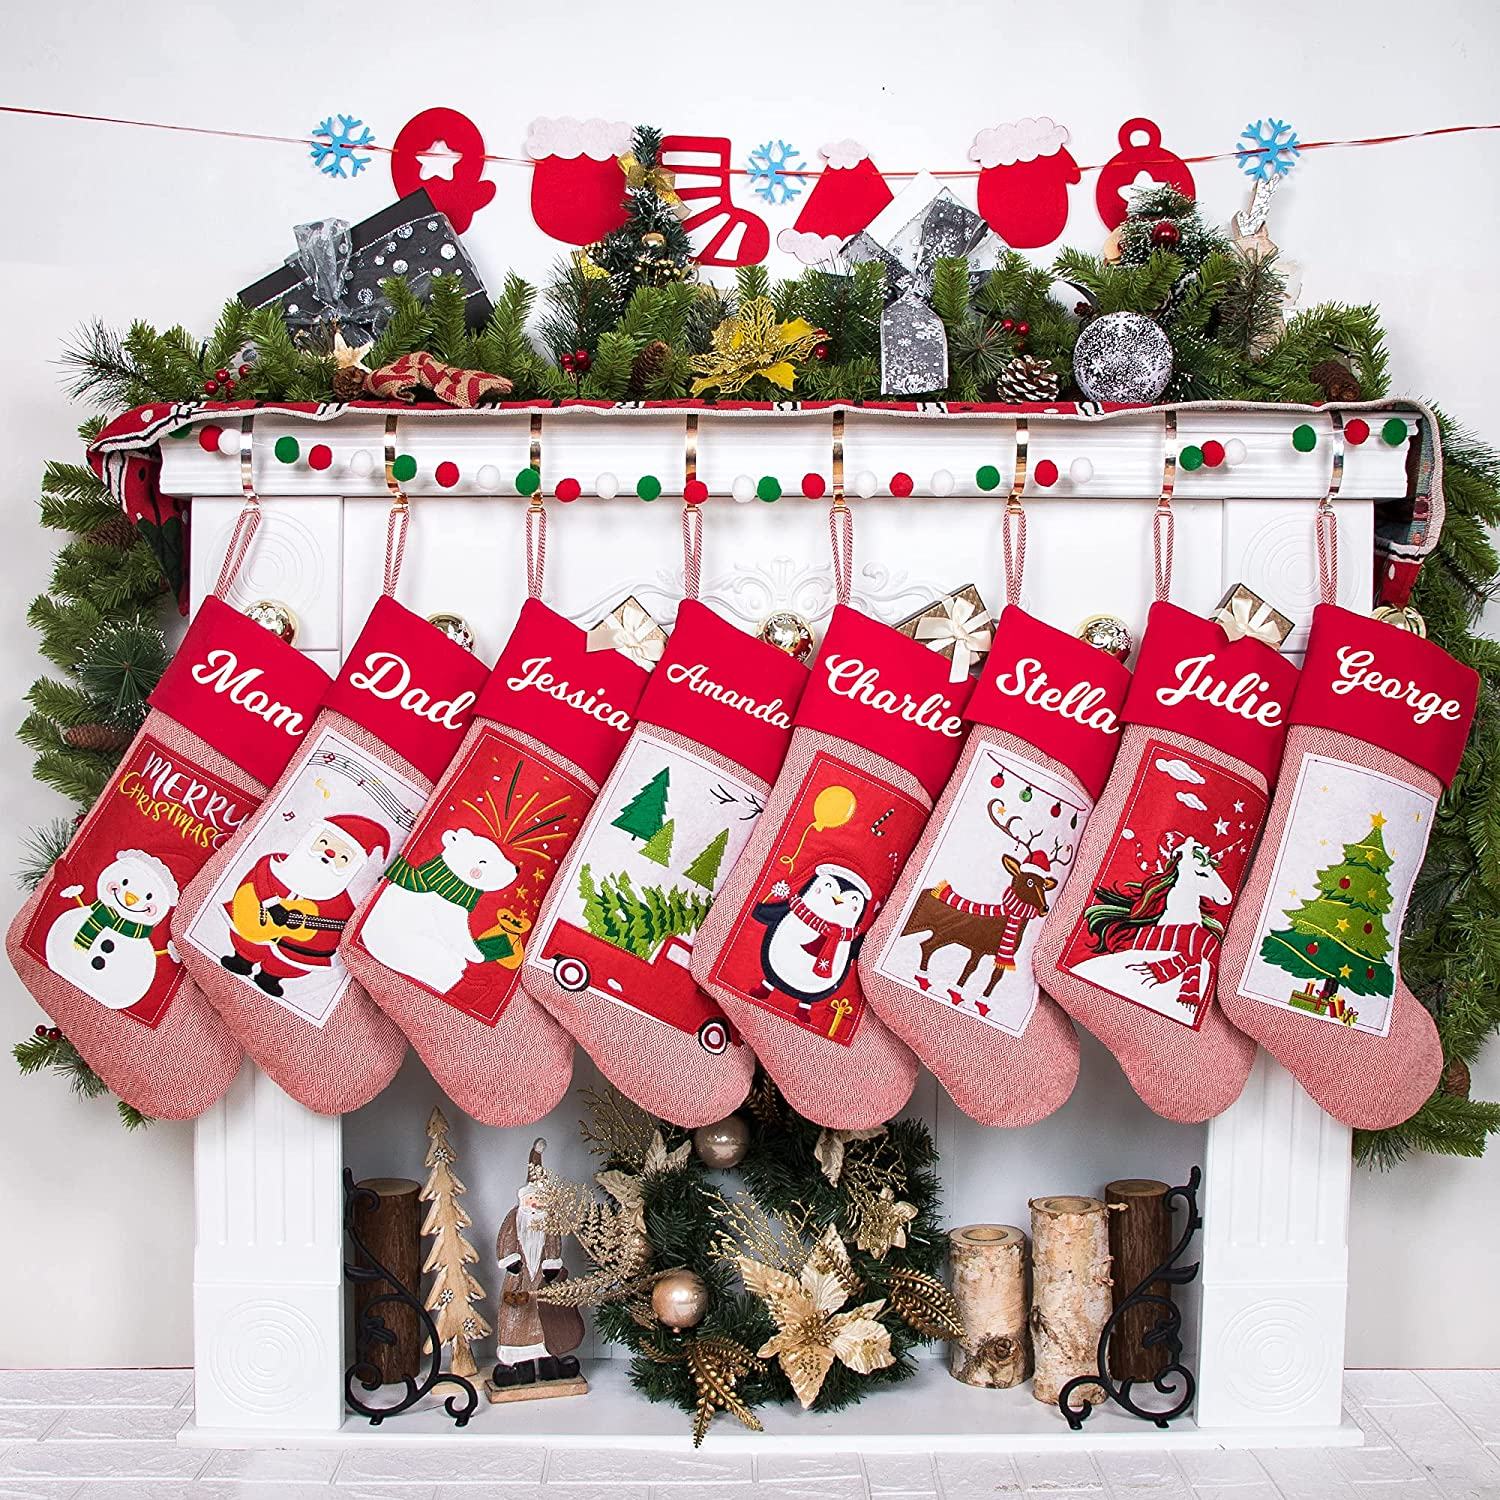 GEX 2021 Personalized Oakland Mall Christmas Stockings Name for Family Nippon regular agency Custom